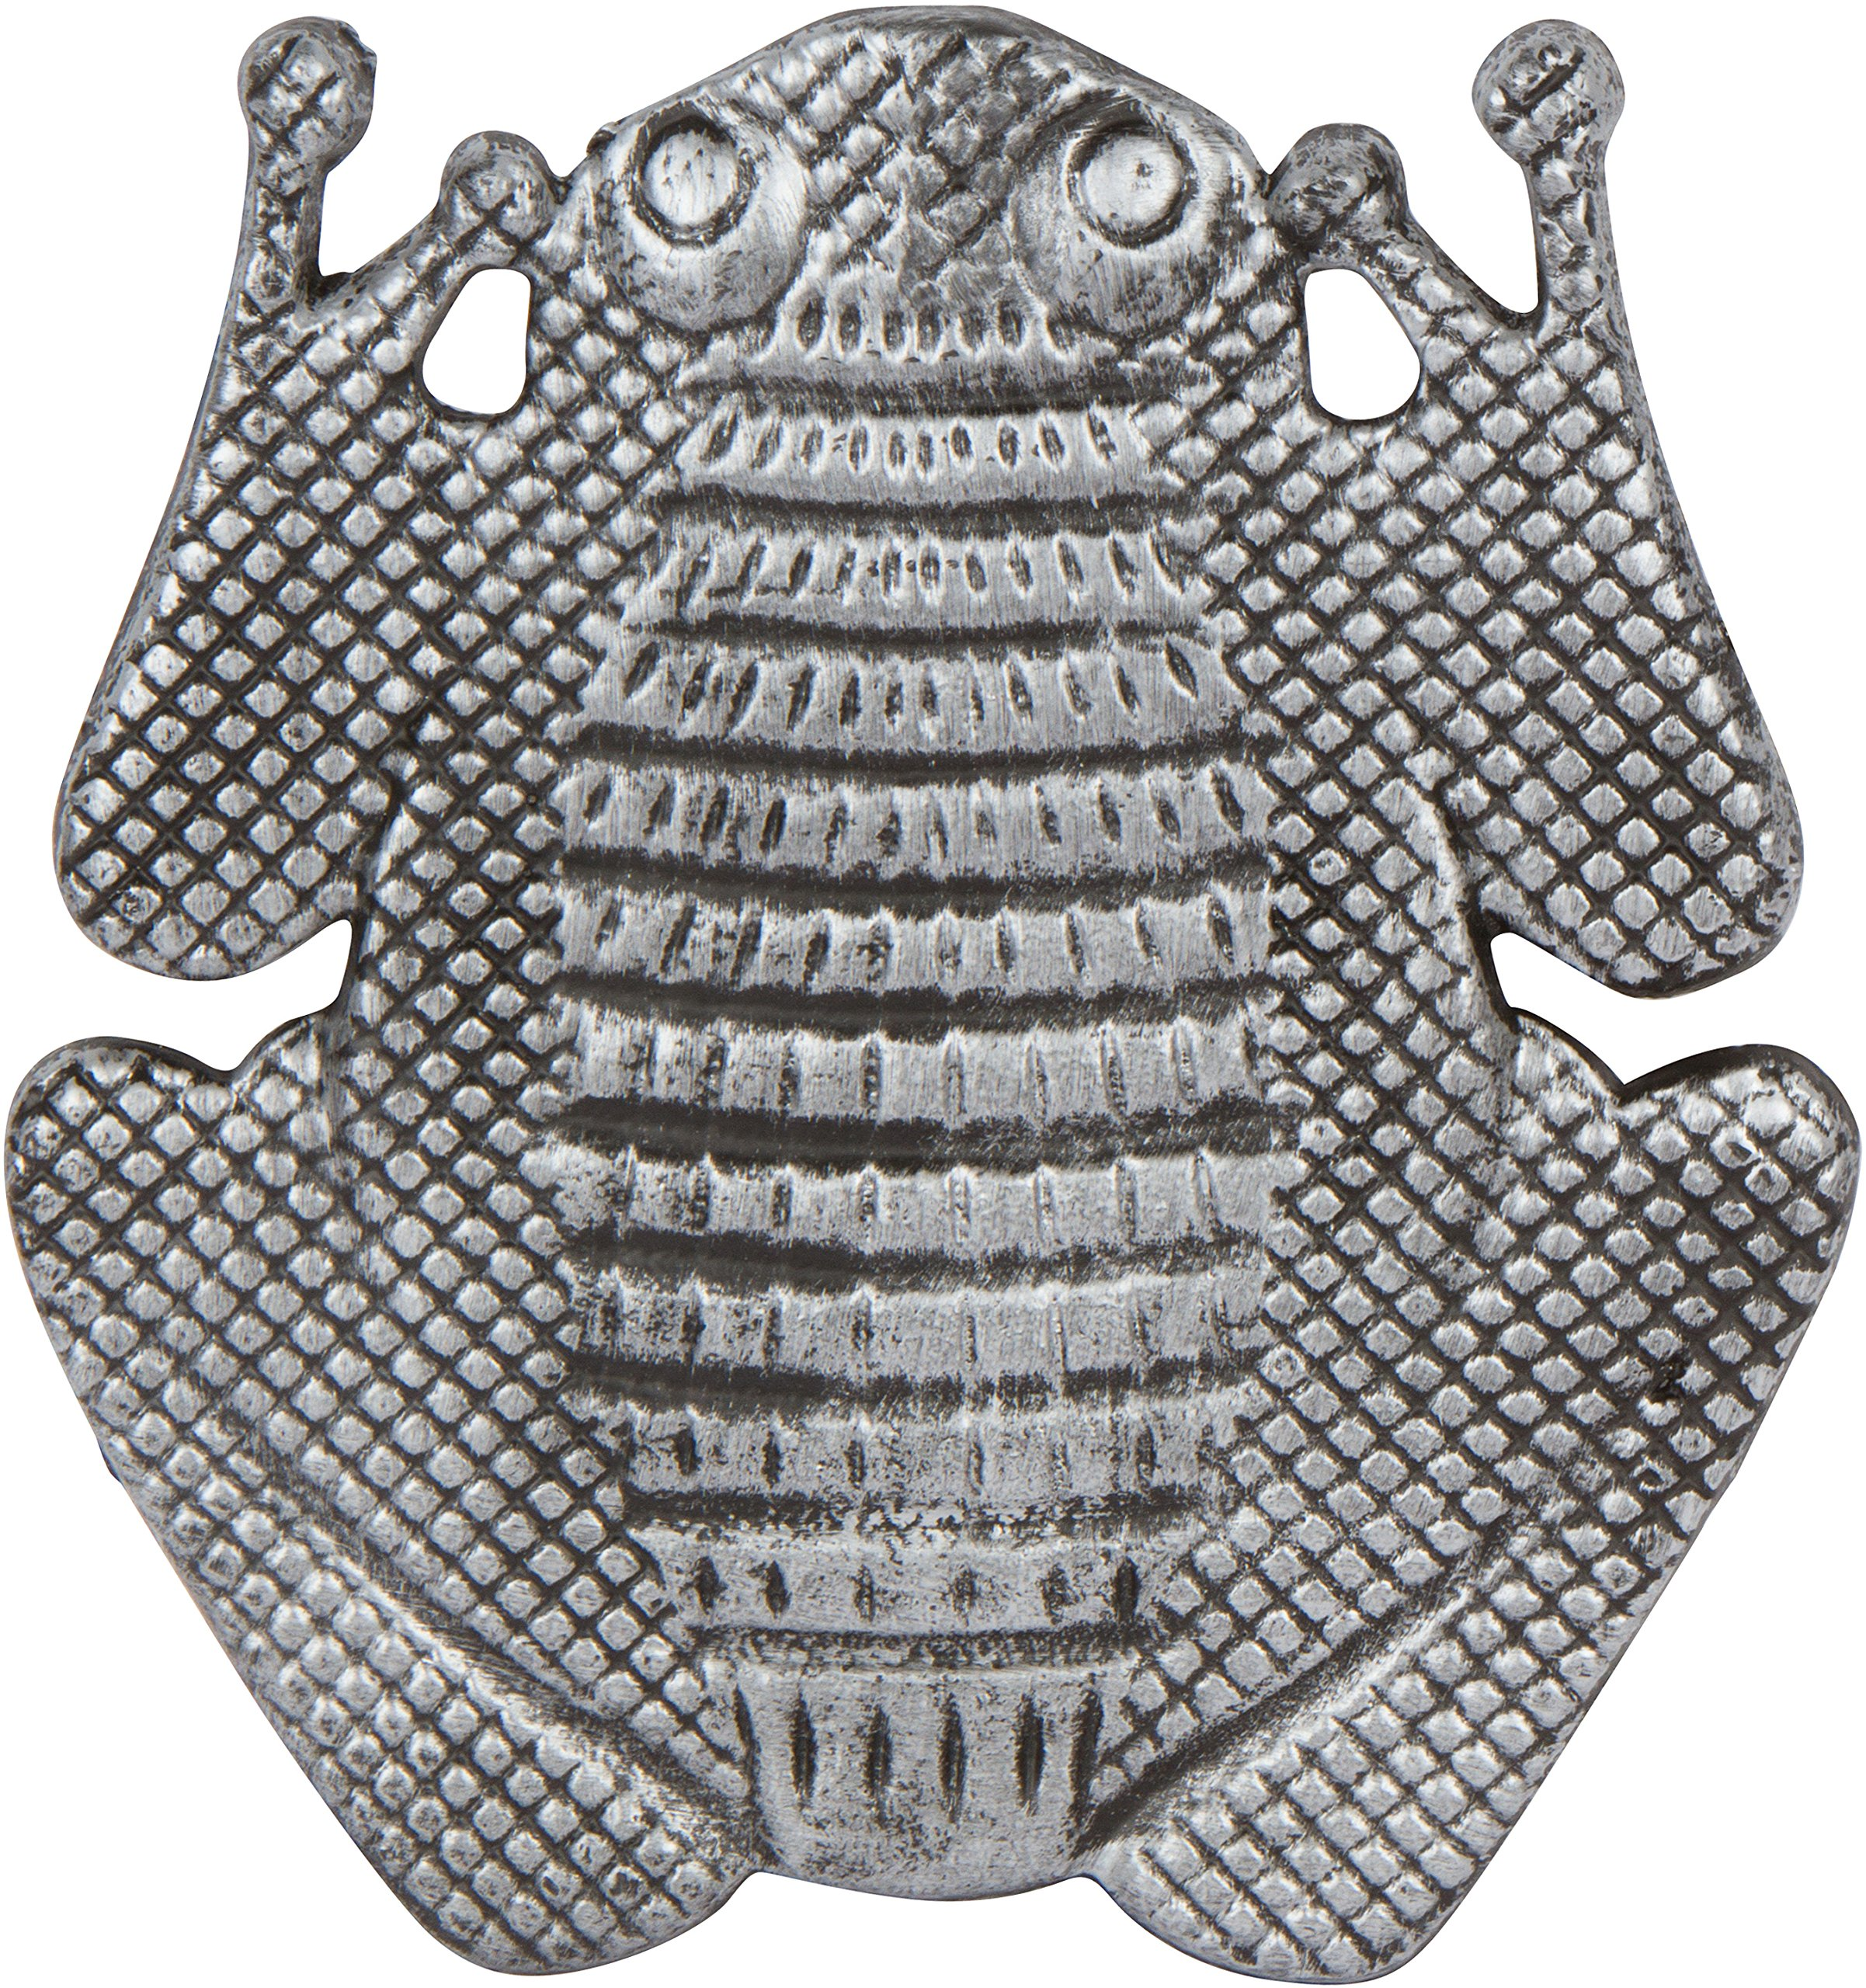 11'' Cast Iron Frog Garden Stepping Stone Tile by Trademark Innovations